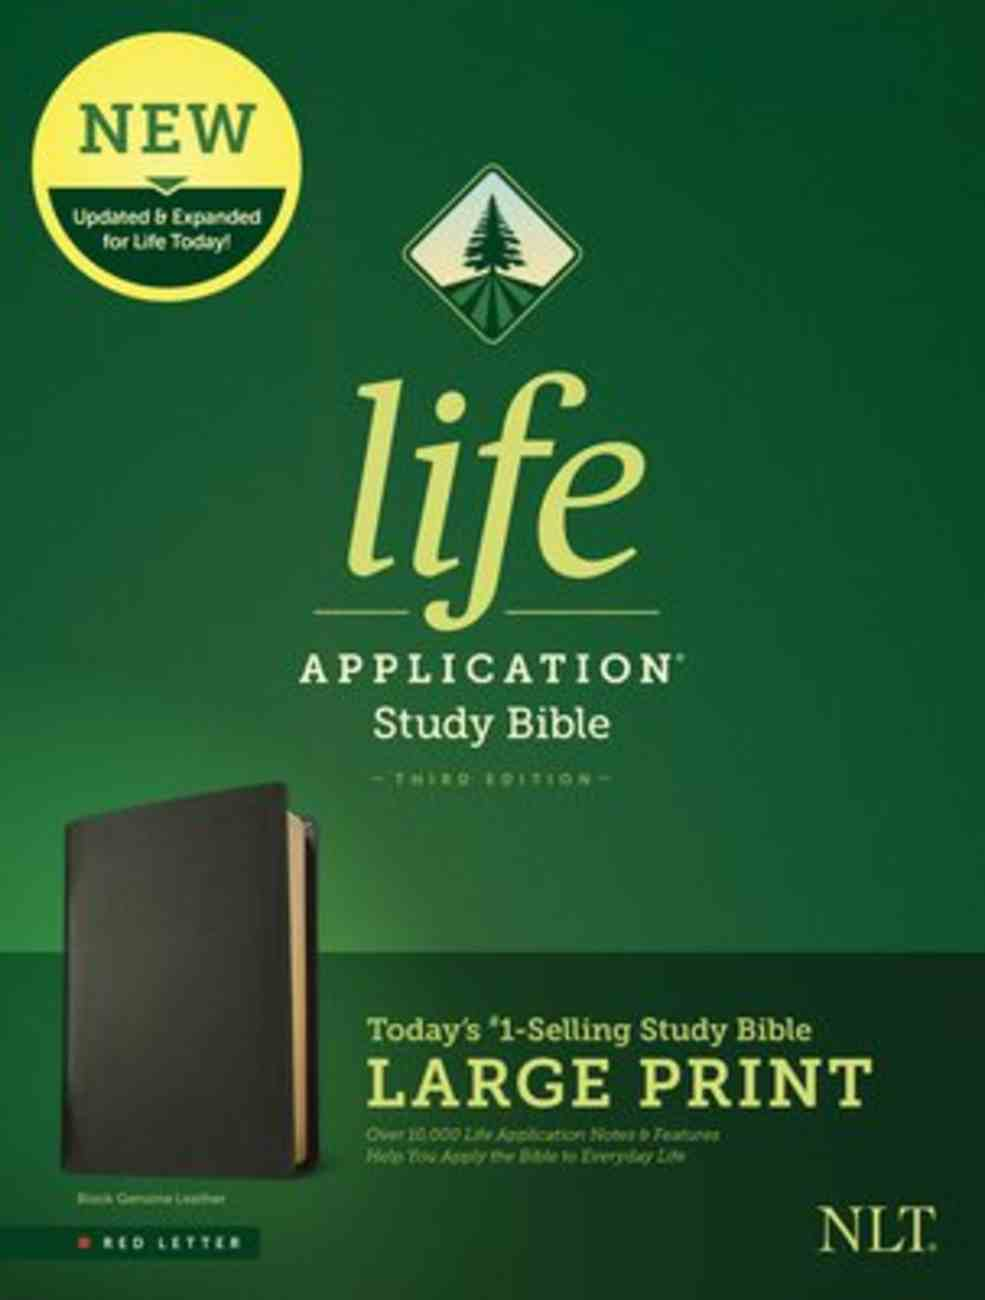 NLT Life Application Study Bible 3rd Edition Large Print Black (Red Letter Edition) Genuine Leather